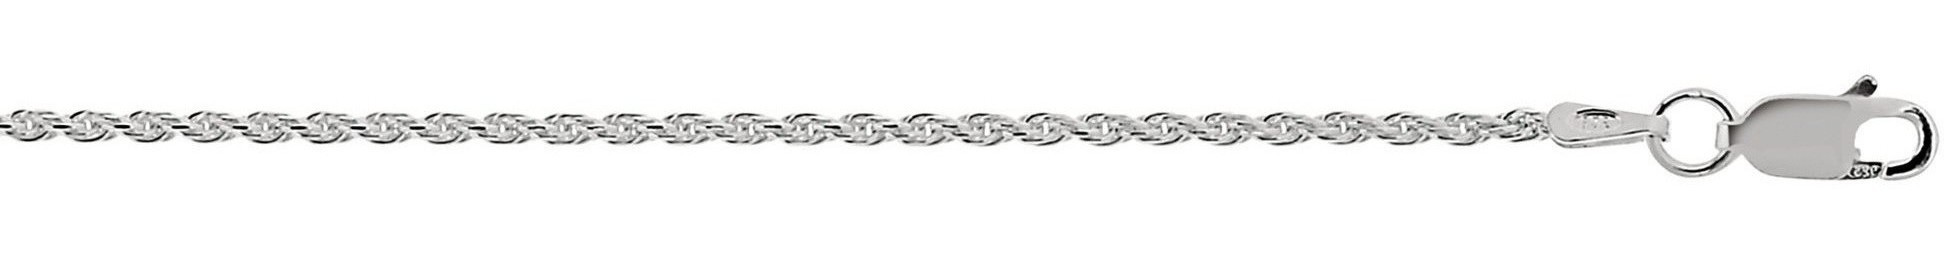 "16"" 1.4mm (0.06"") Textured Diamond Cut 925 Sterling Silver Rope Chain w/ Lobster Clasp"